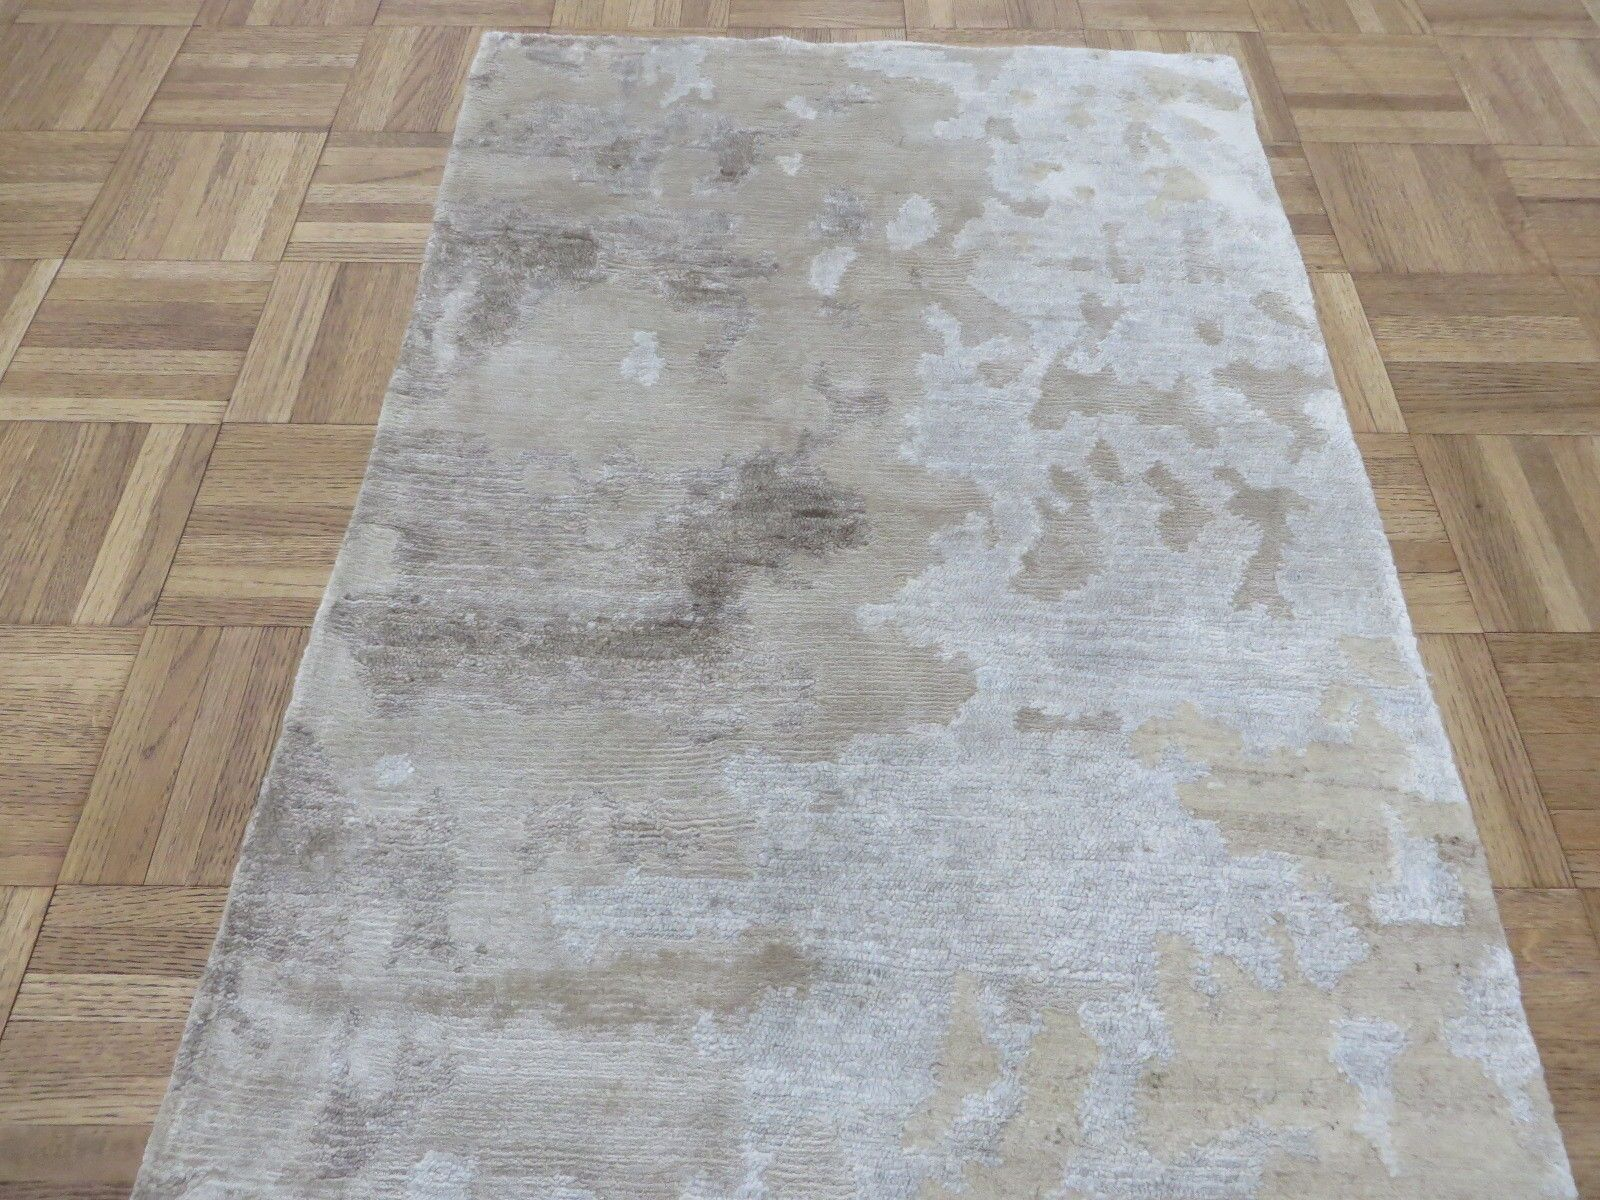 One-of-a-Kind Padang Sidempuan Modern Hand-Knotted Wool Gray Area Rug Rug Size: Rectangle 2' x 2'11